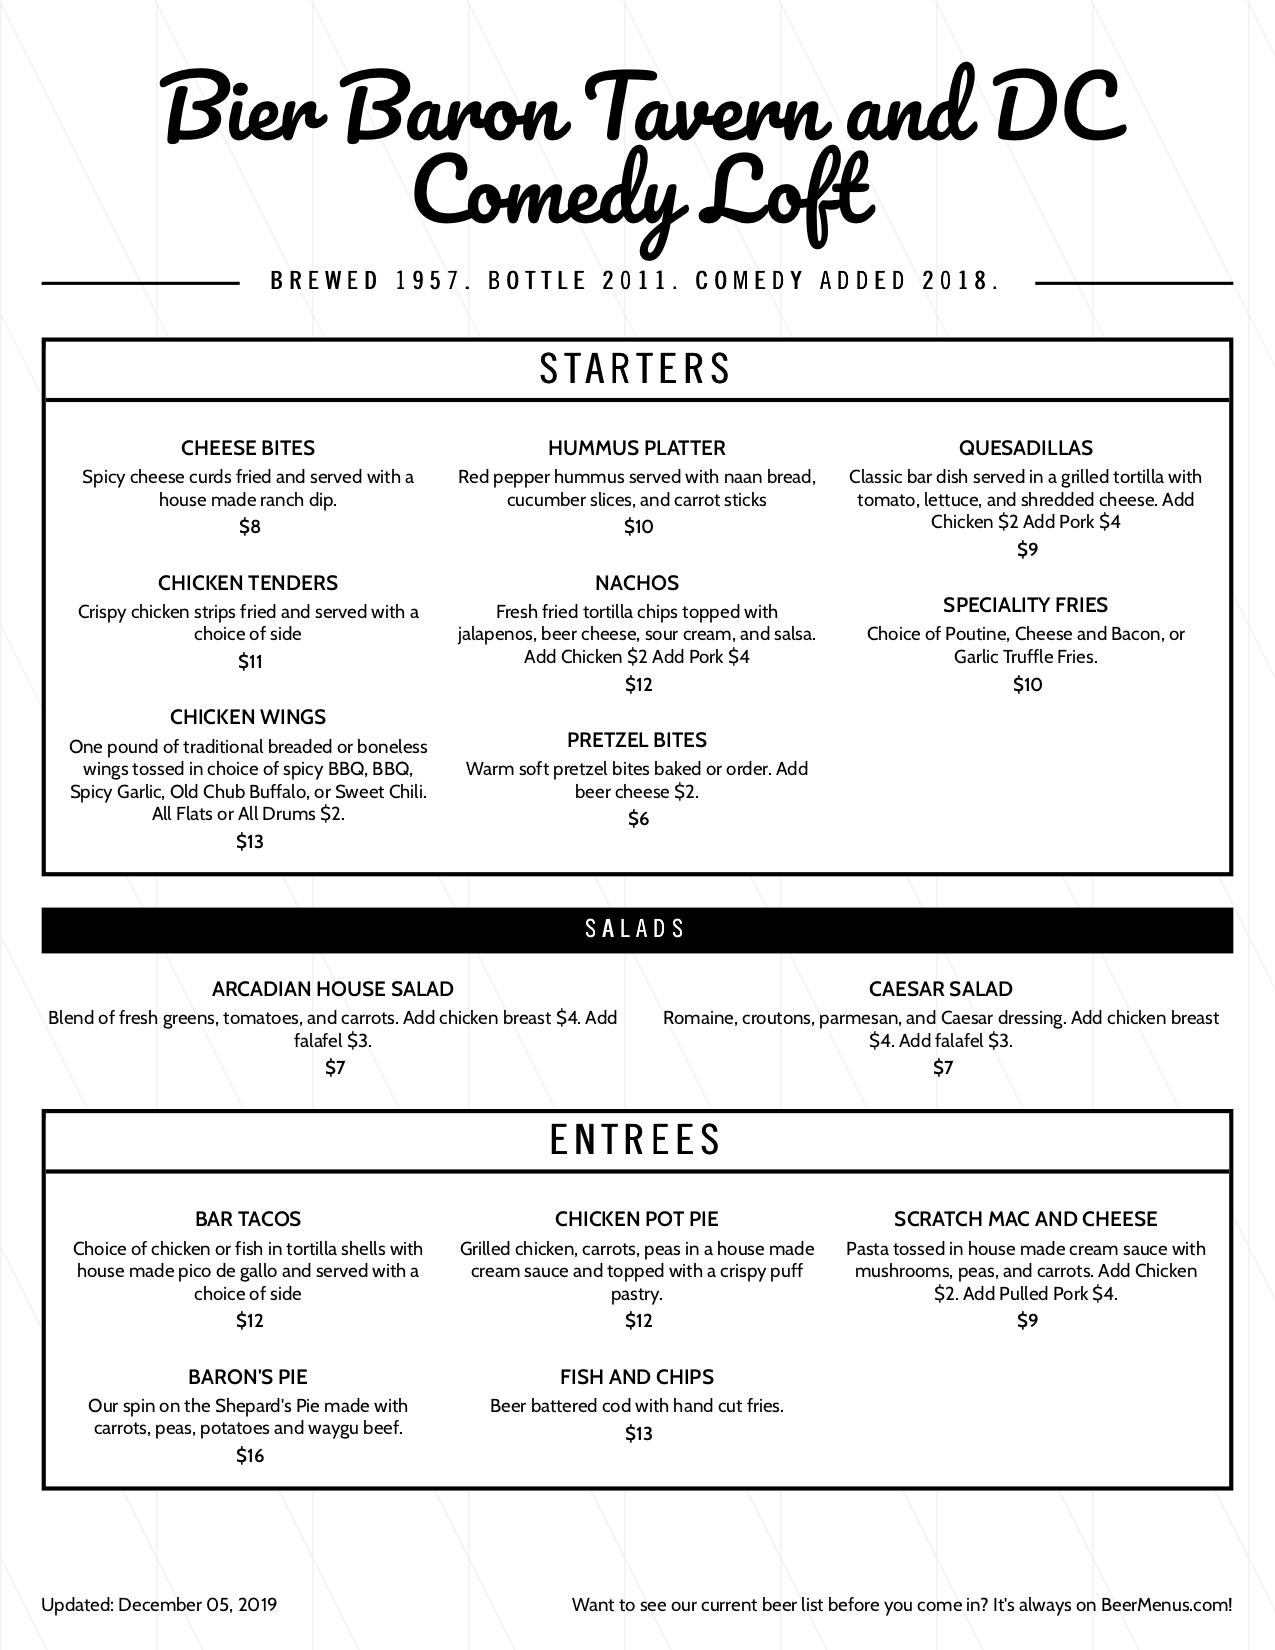 Comedy Loft Menu. Image links to full menu readable PDF